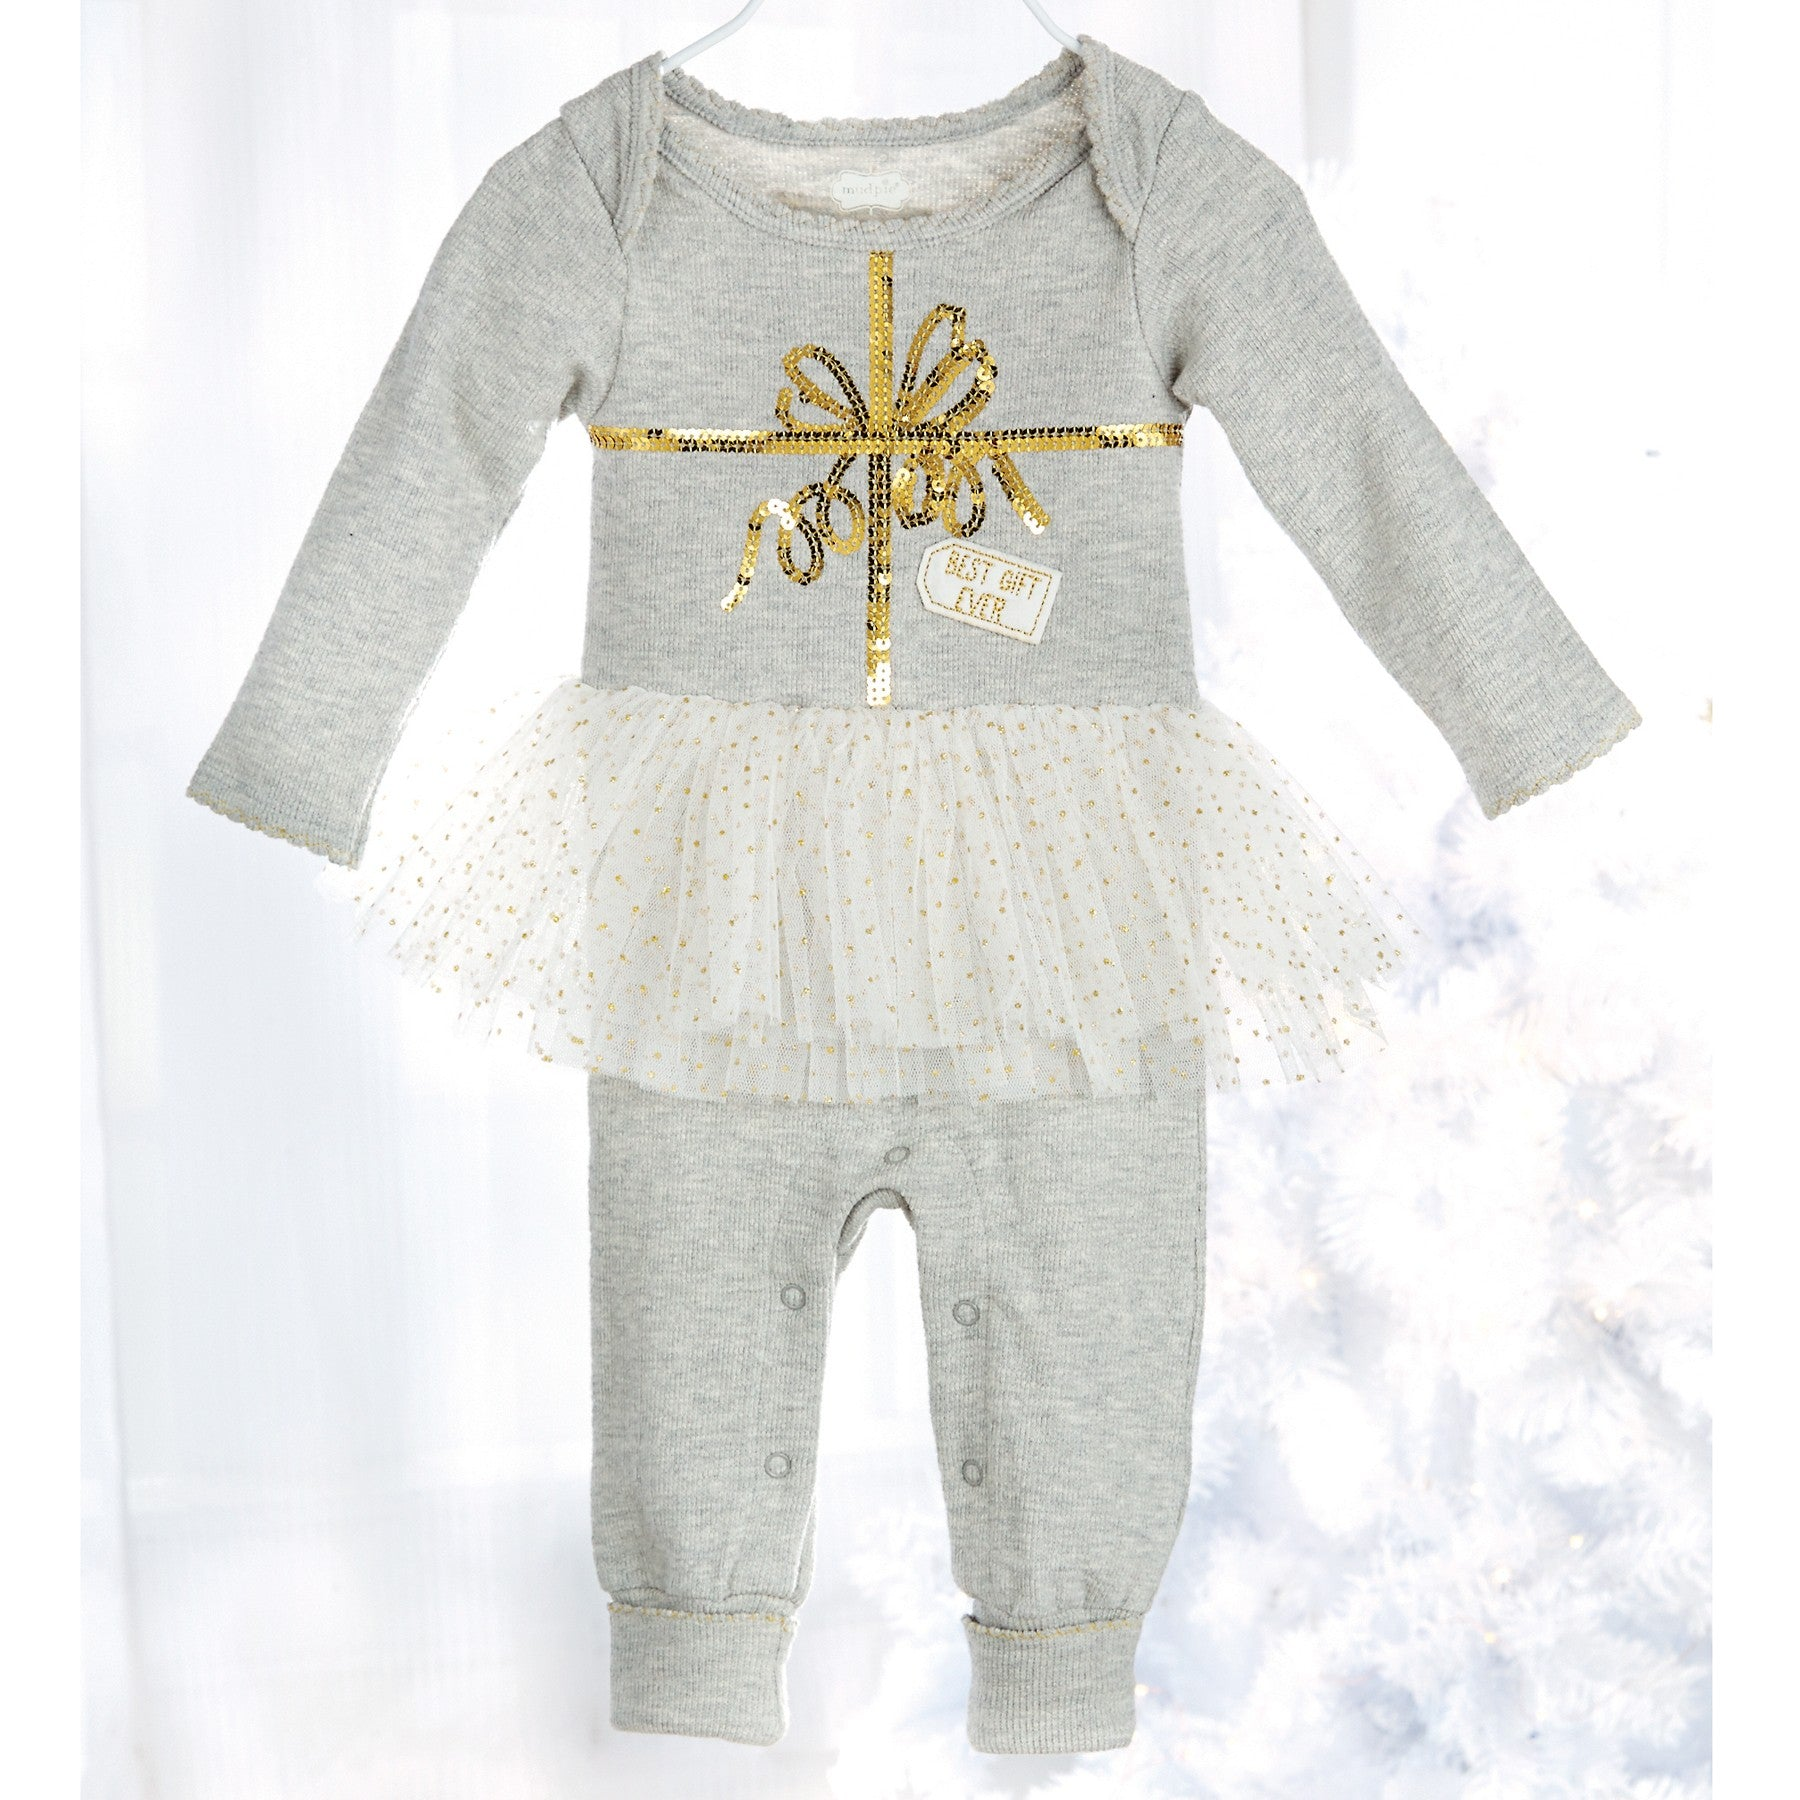 Best Gift Ever Tutu One Piece by Mud Pie